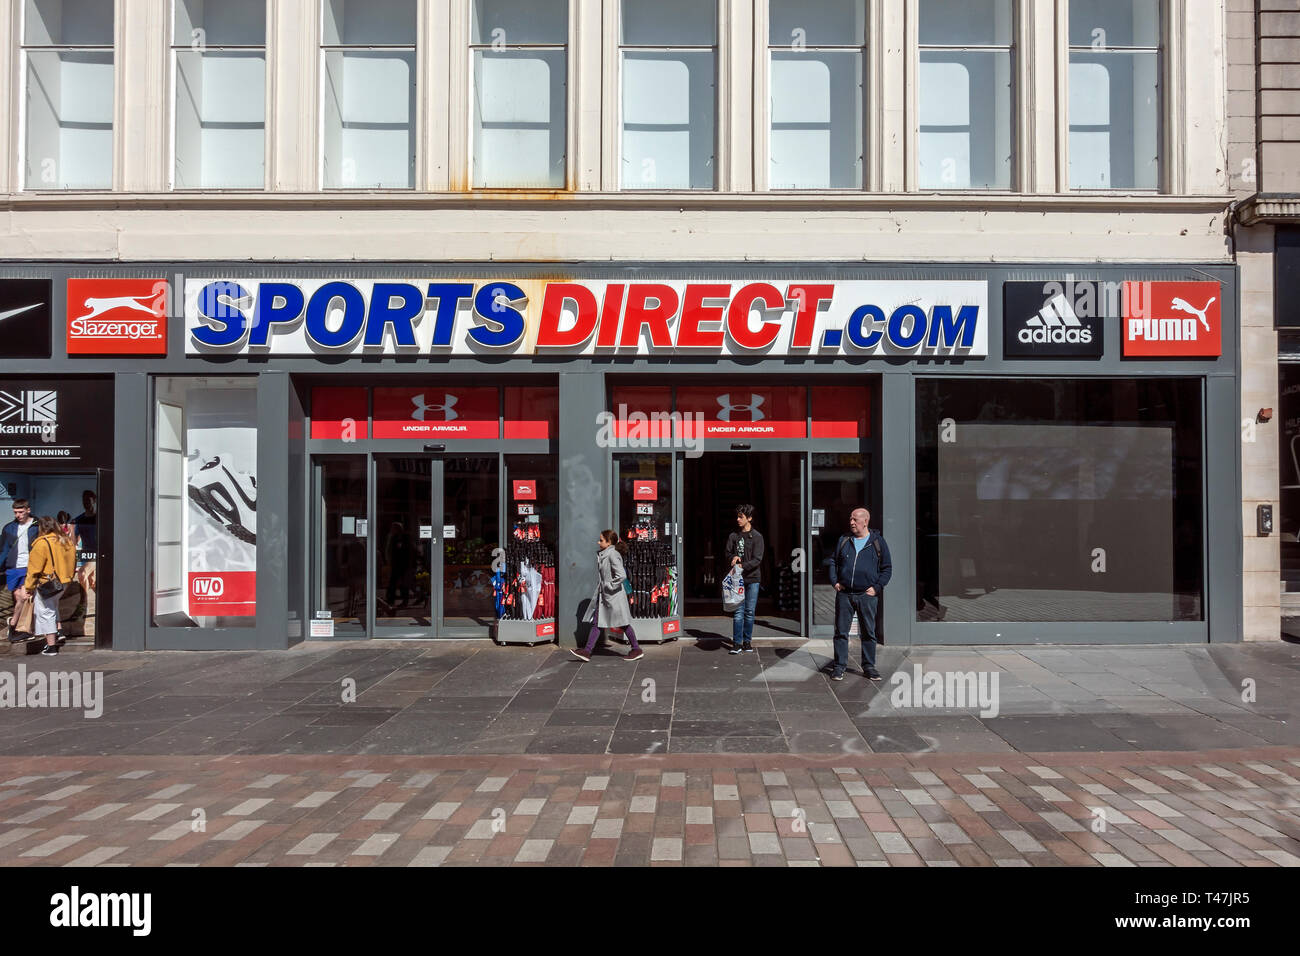 Sports Direct Store Uk High Resolution Stock Photography And Images Alamy Sports direct international plc is one the largest retailer of sport's good in the united kingdom which has a large array of sporting brands like adidas. https www alamy com sports direct store in argyle street glasgow scotland uk image243572201 html